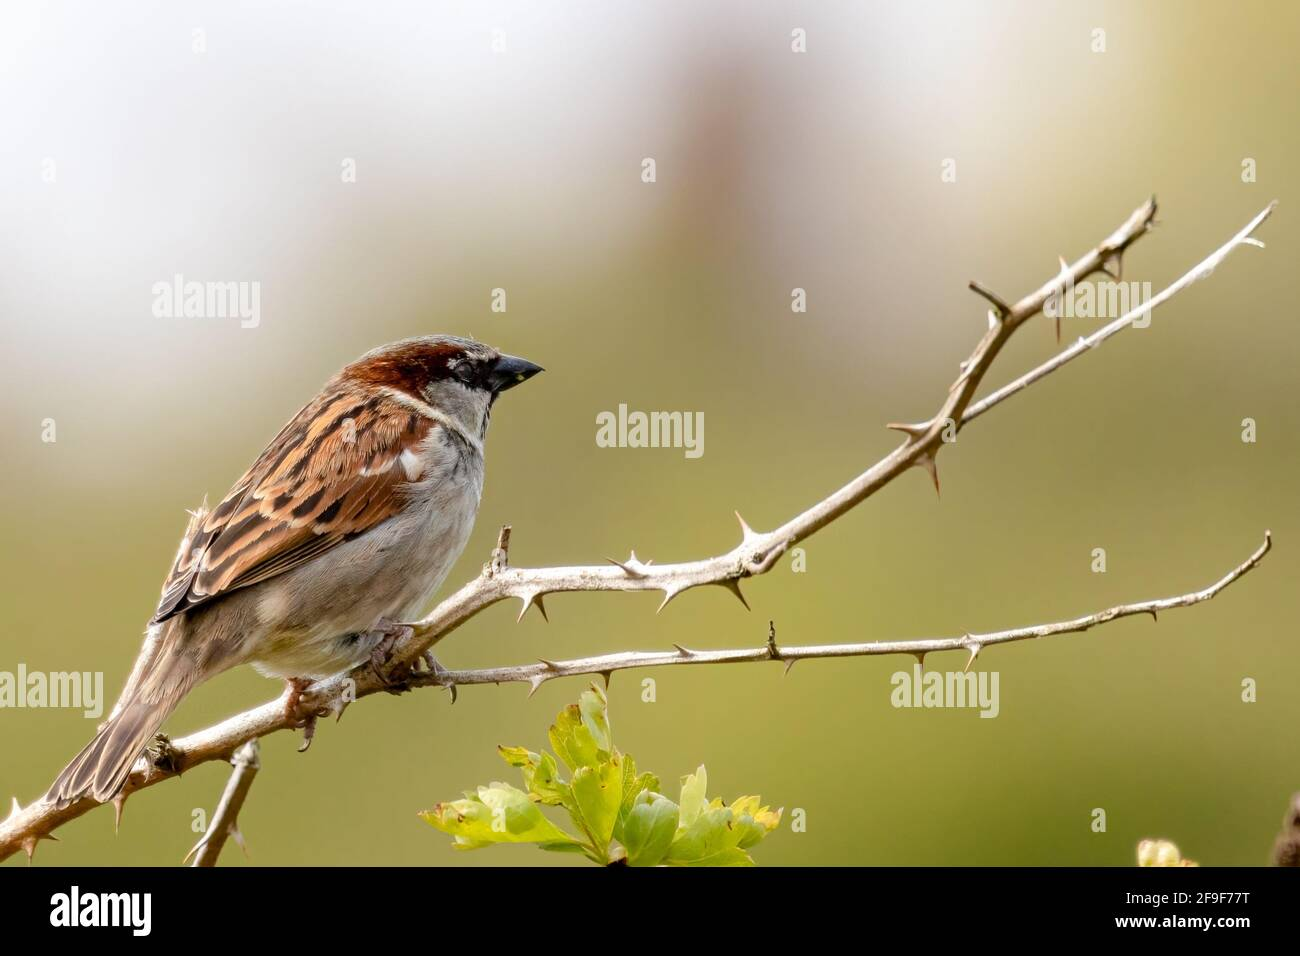 Male house sparrow sitting on a branch in the sun looking into negative space for a caption, if required Stock Photo